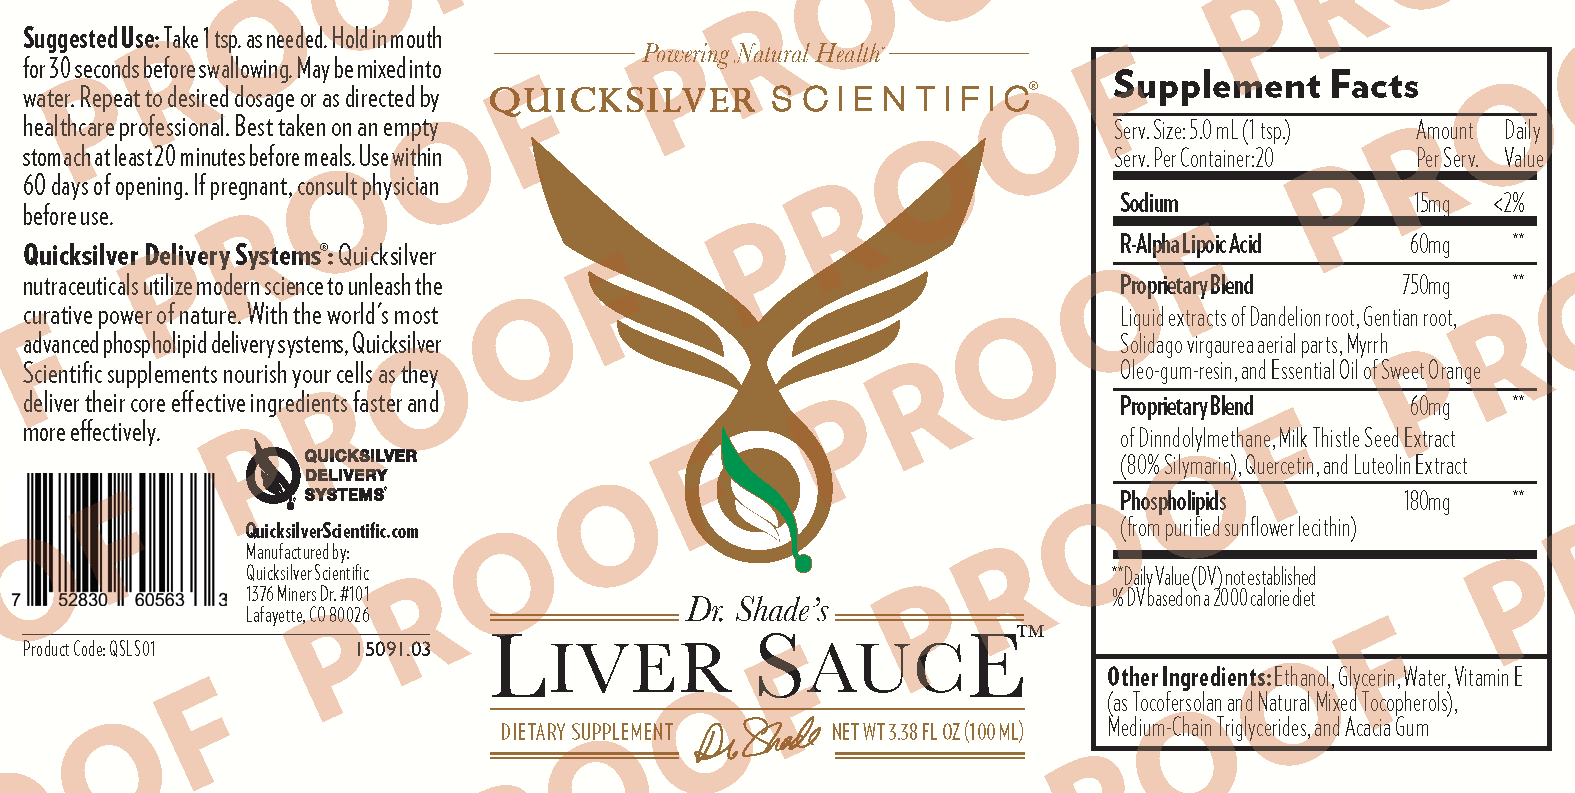 Liver Sauce 100ml Herbal Line 1509103 Horsetail Extract 1oz/4oz